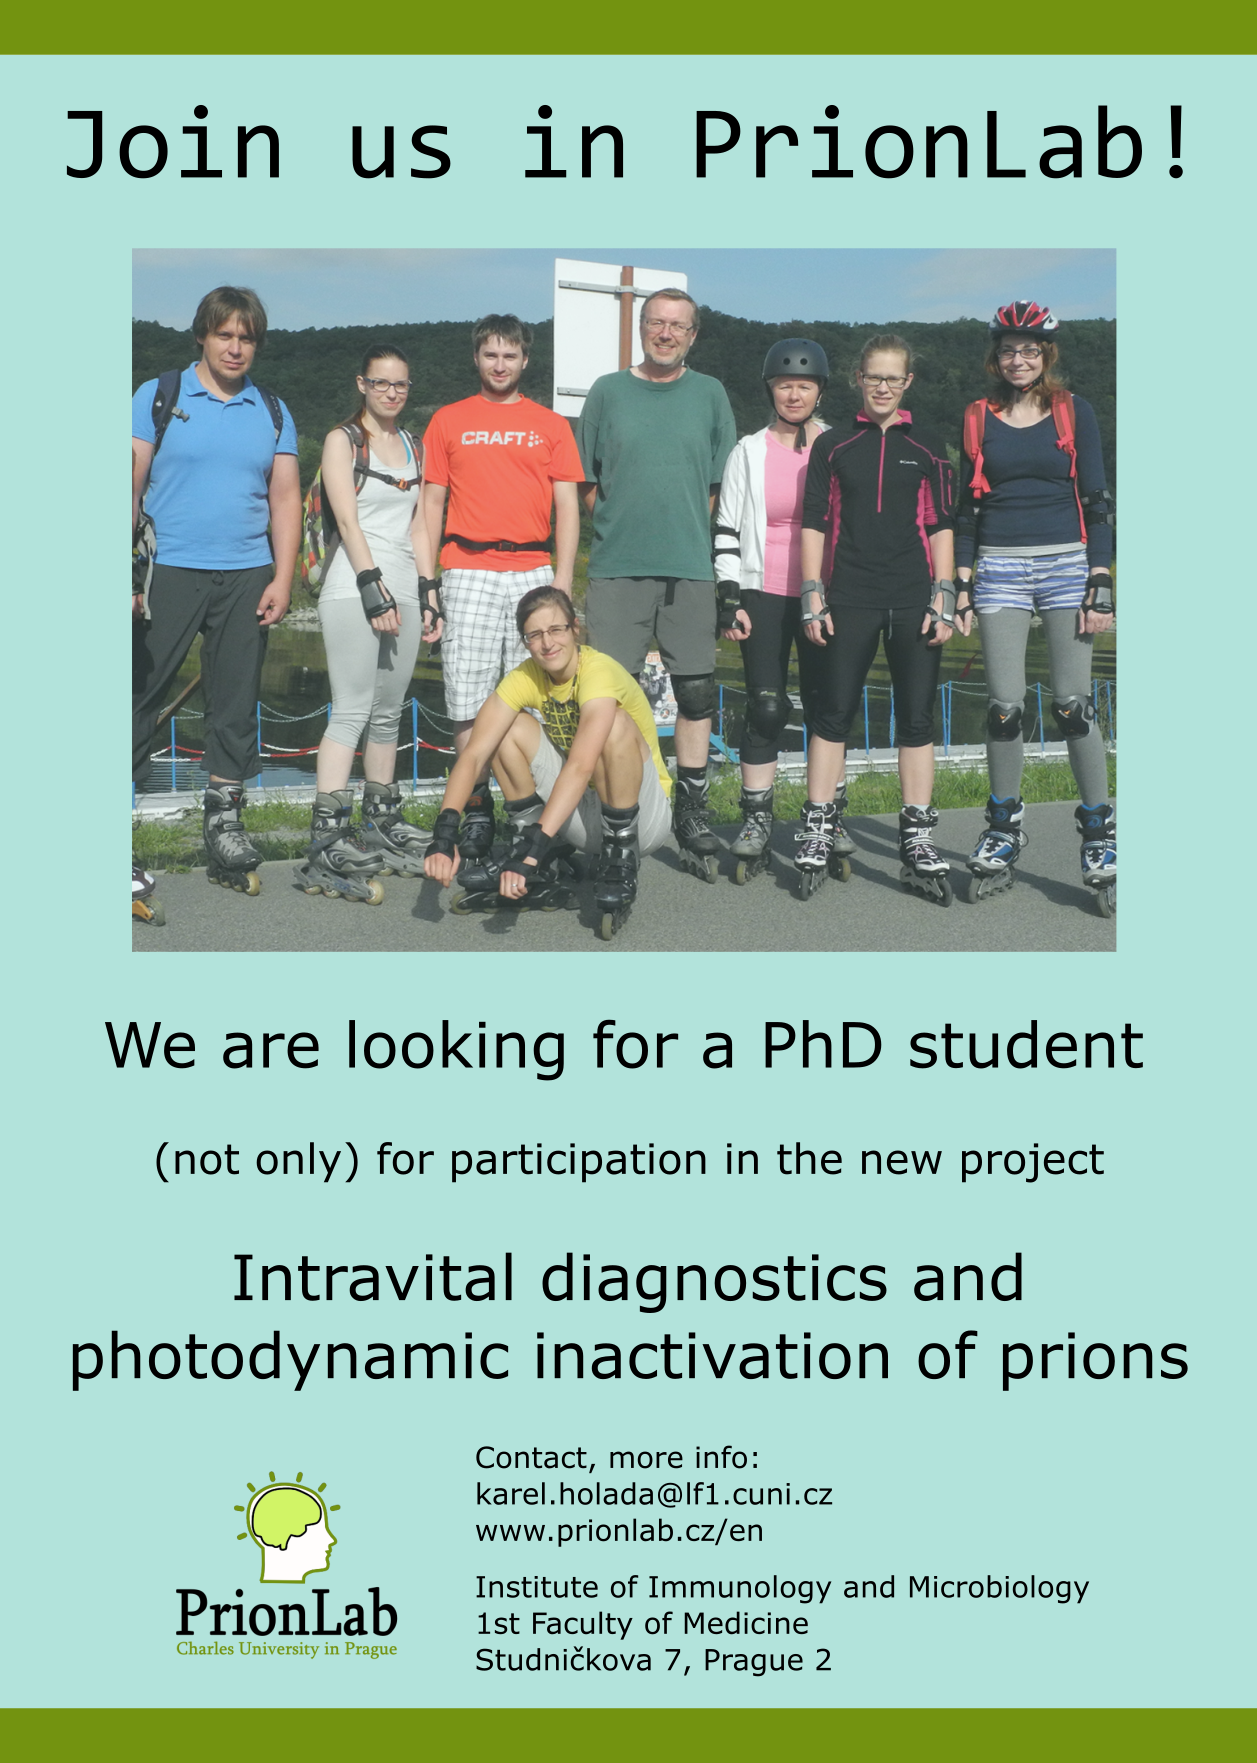 We are looking for a PhD student! Open position: doctoral